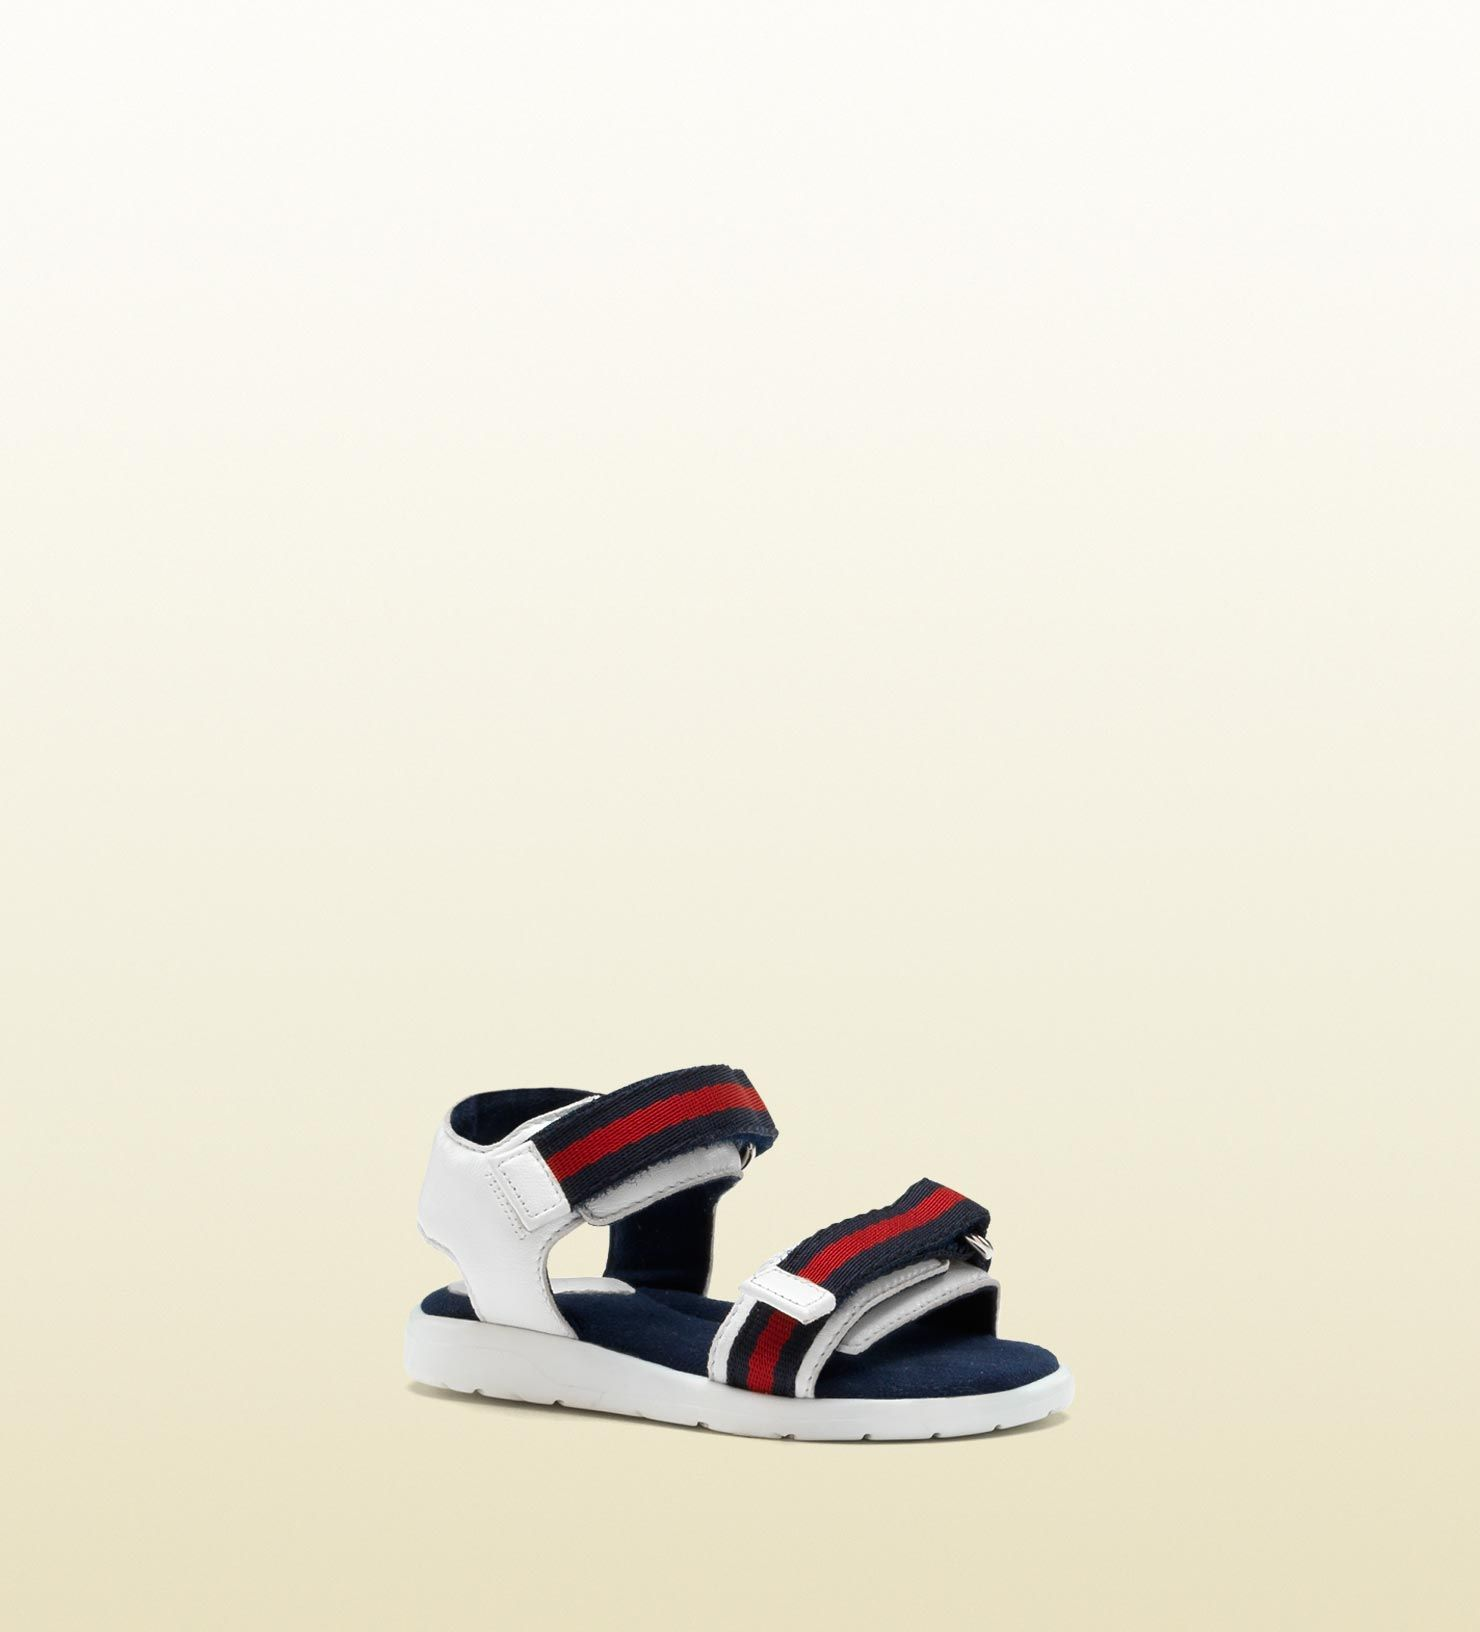 016afcfc3 Gucci toddler leather sandal with signature web straps